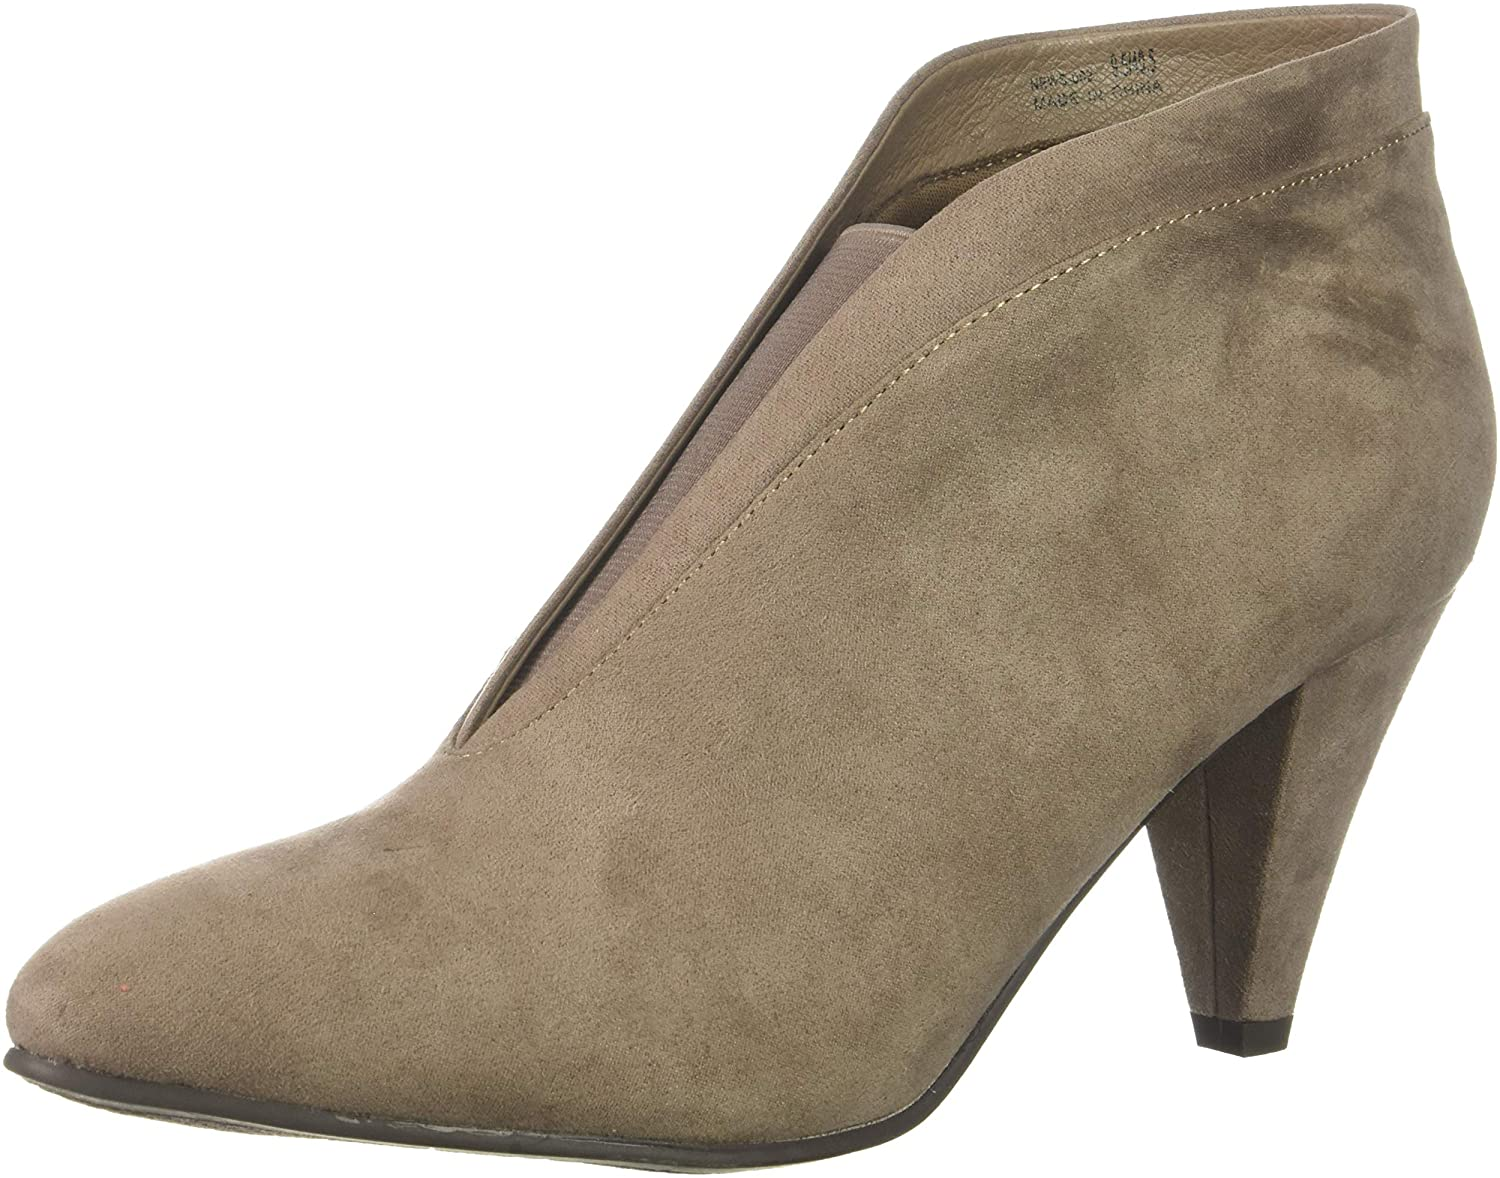 CL by Chinese Laundry Women's Nevine Ankle Boot